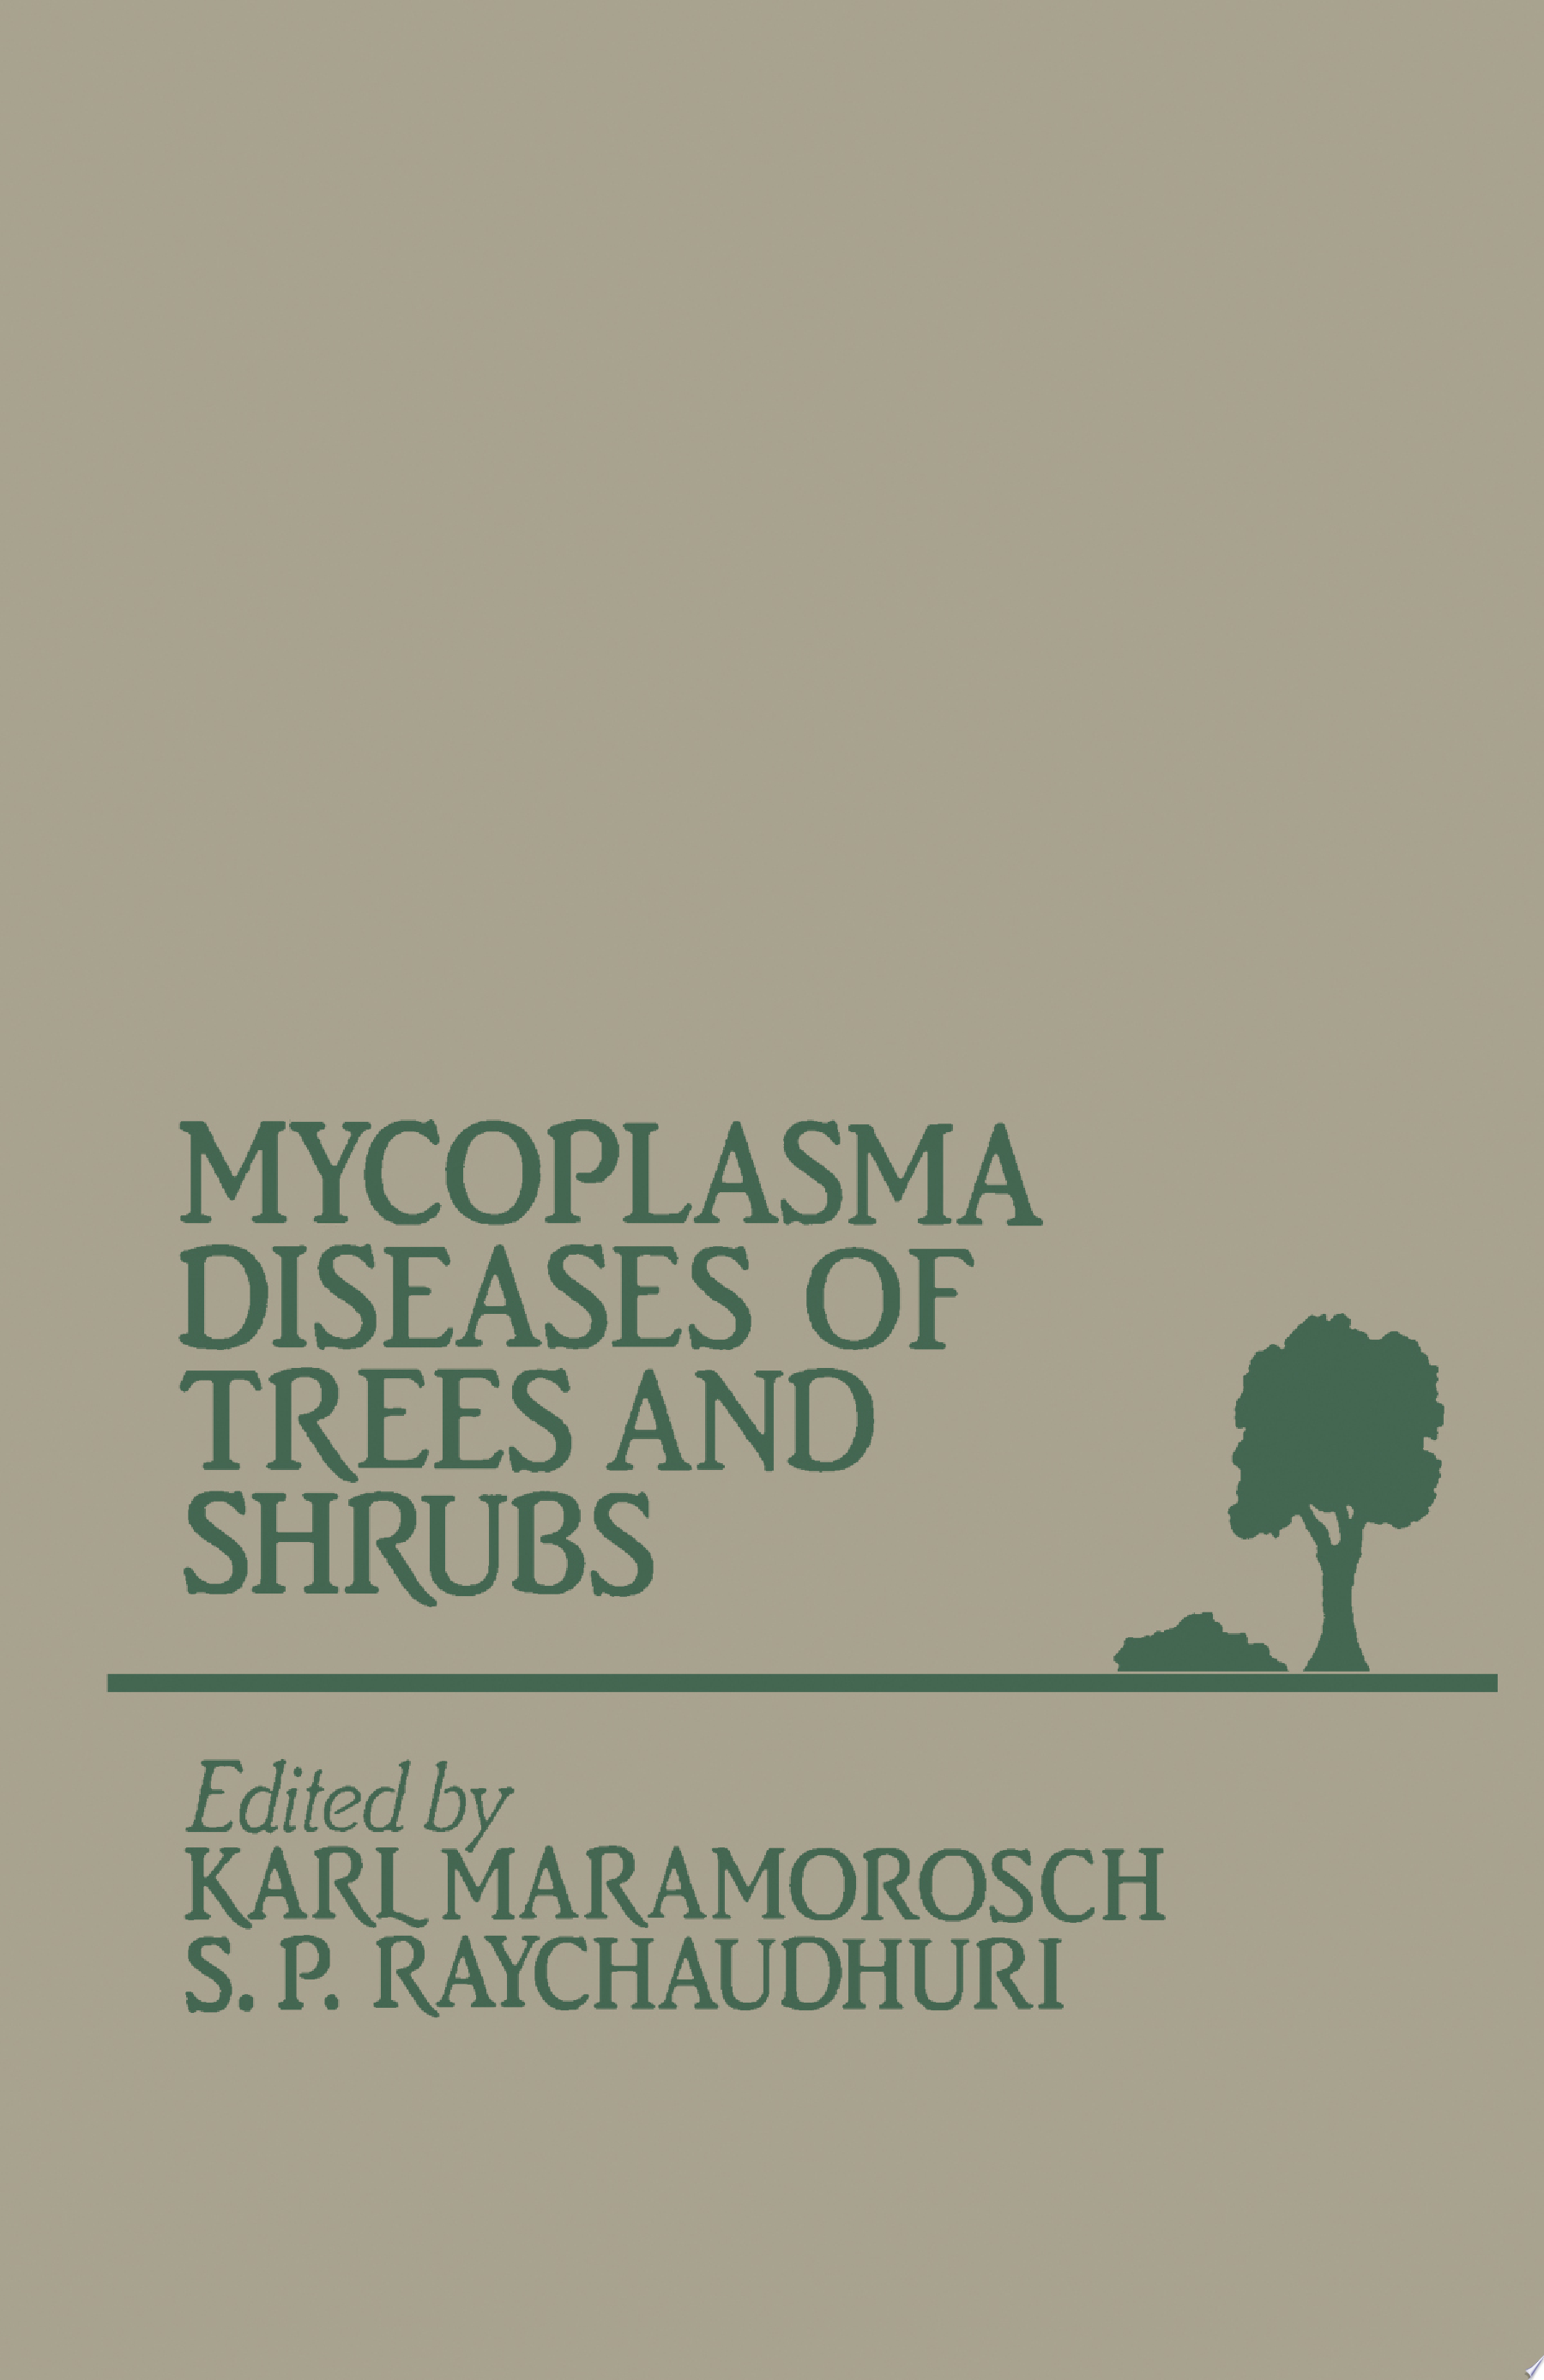 Mycoplasma Diseases of Trees and Shrubs